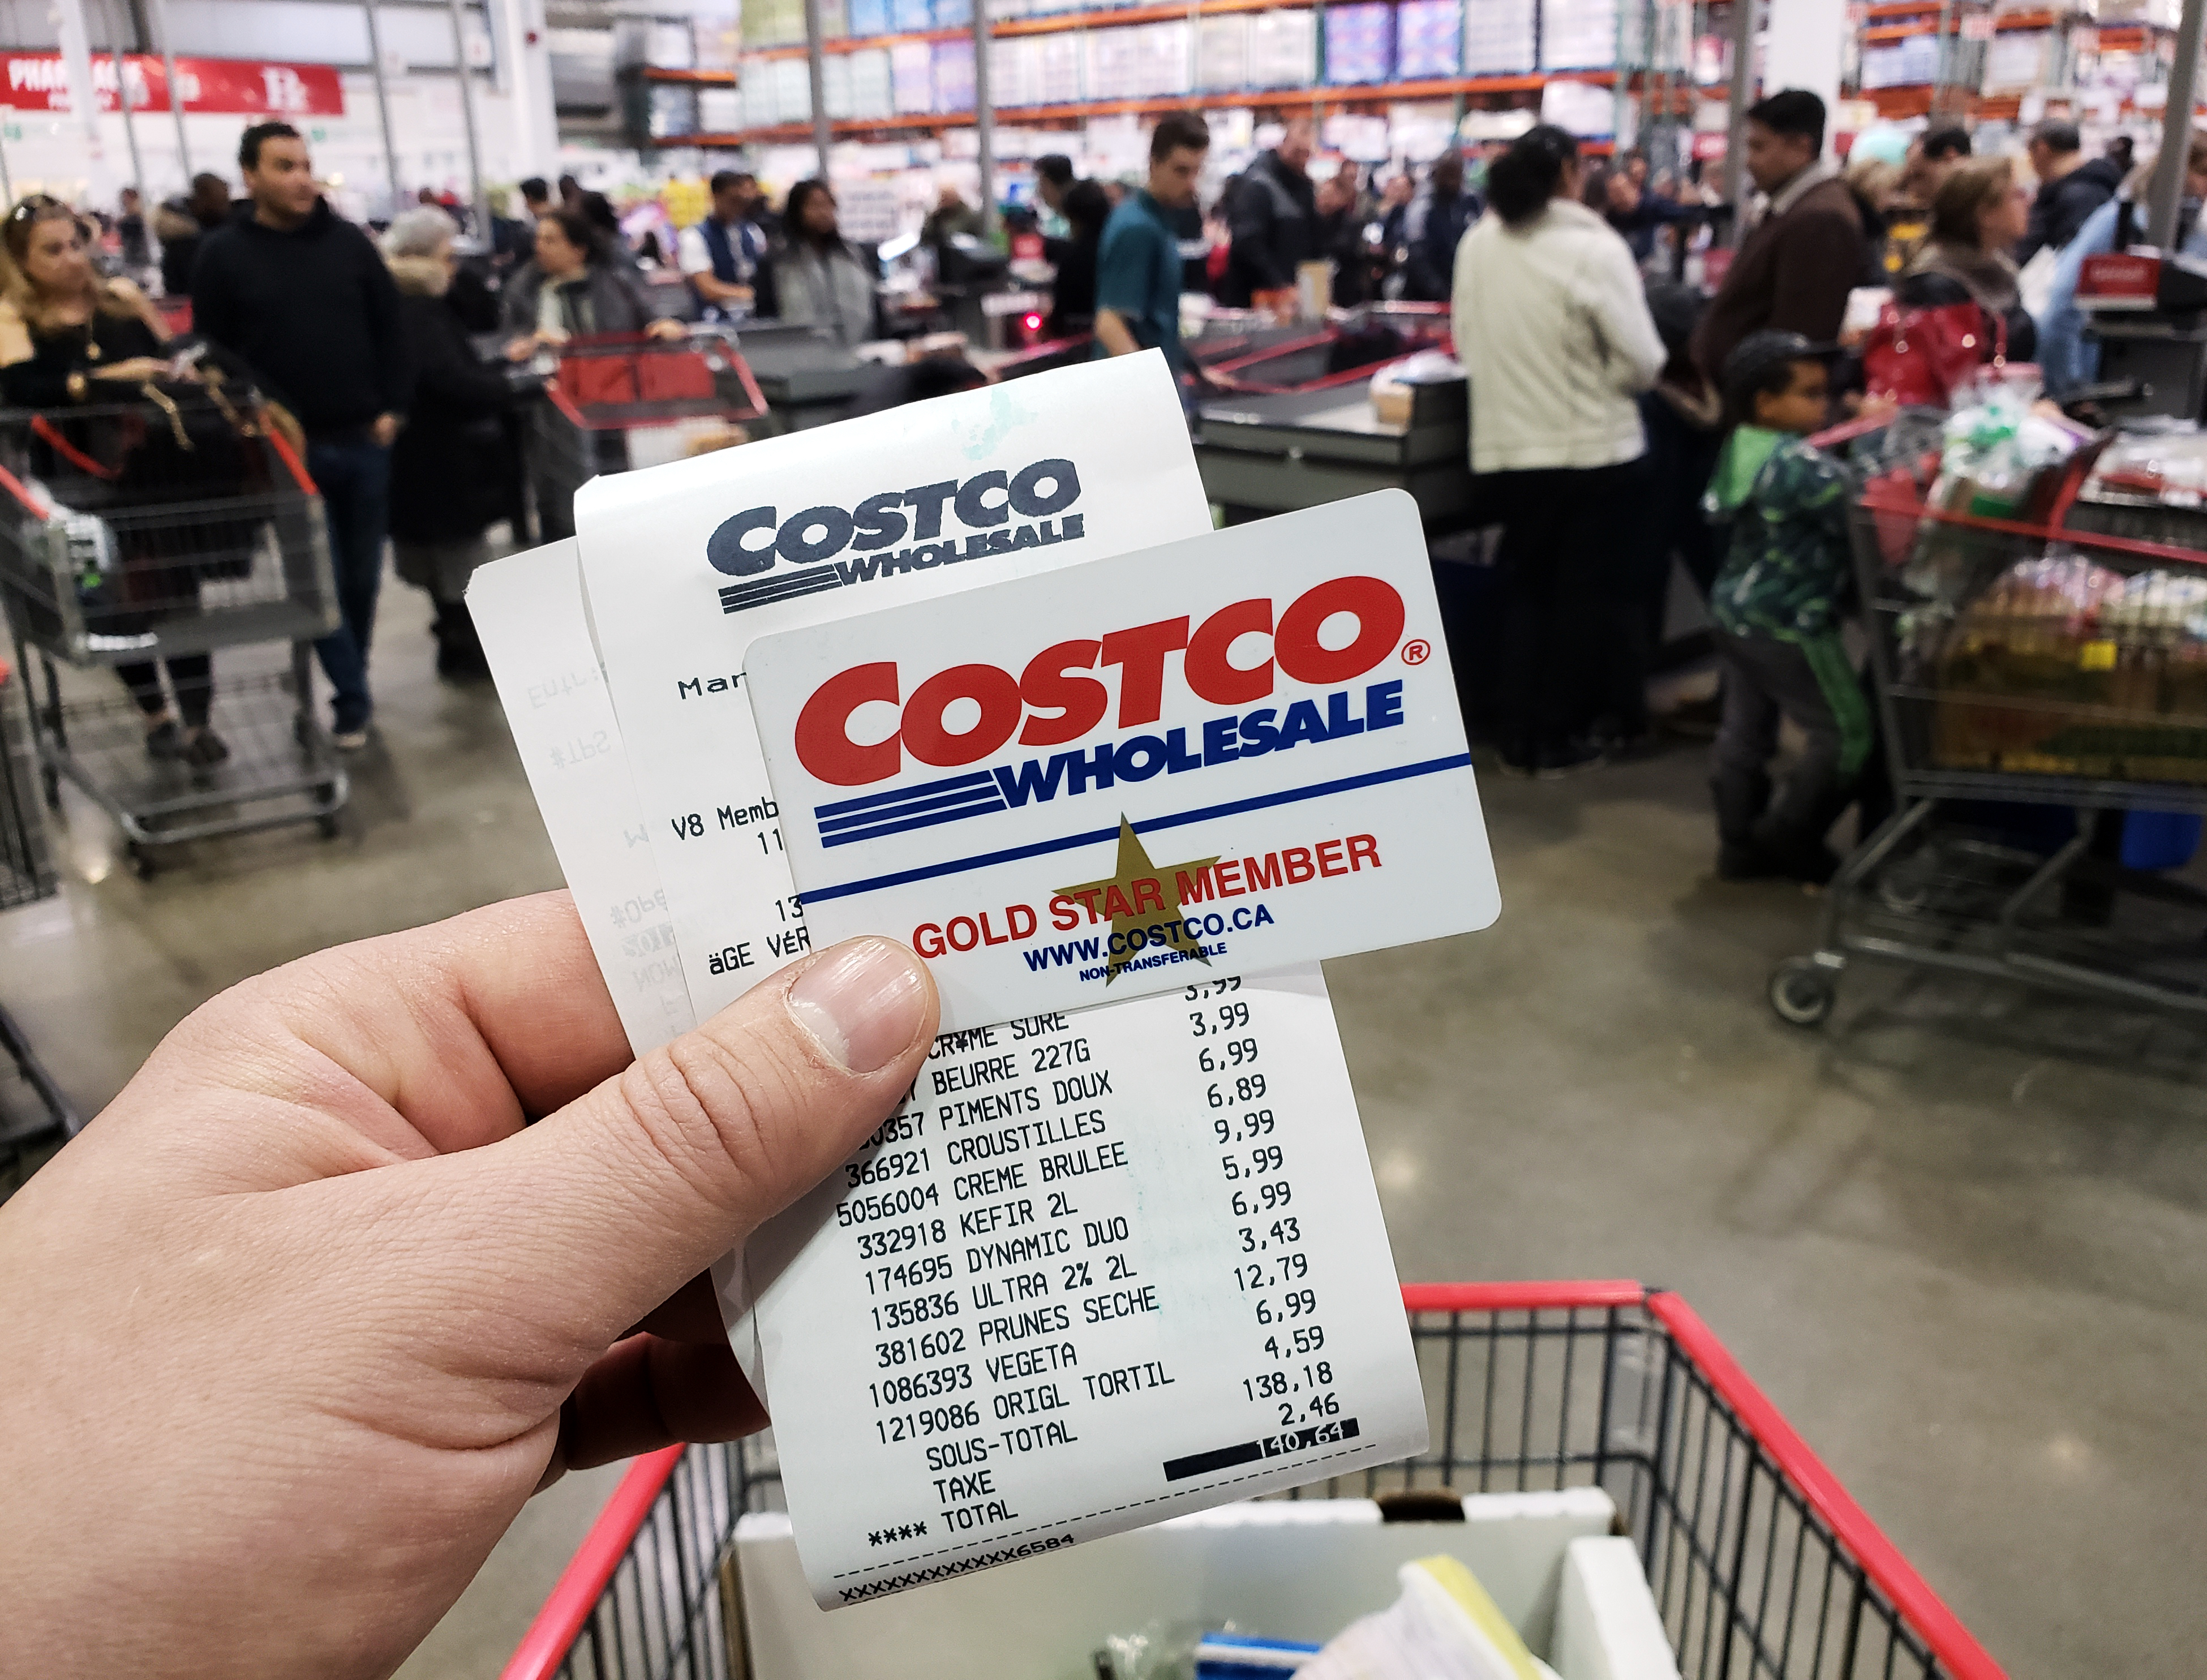 Costco 12 Days Of Christmas 2019 7 Ways to Shop at Costco Without a Membership | Money Talks News